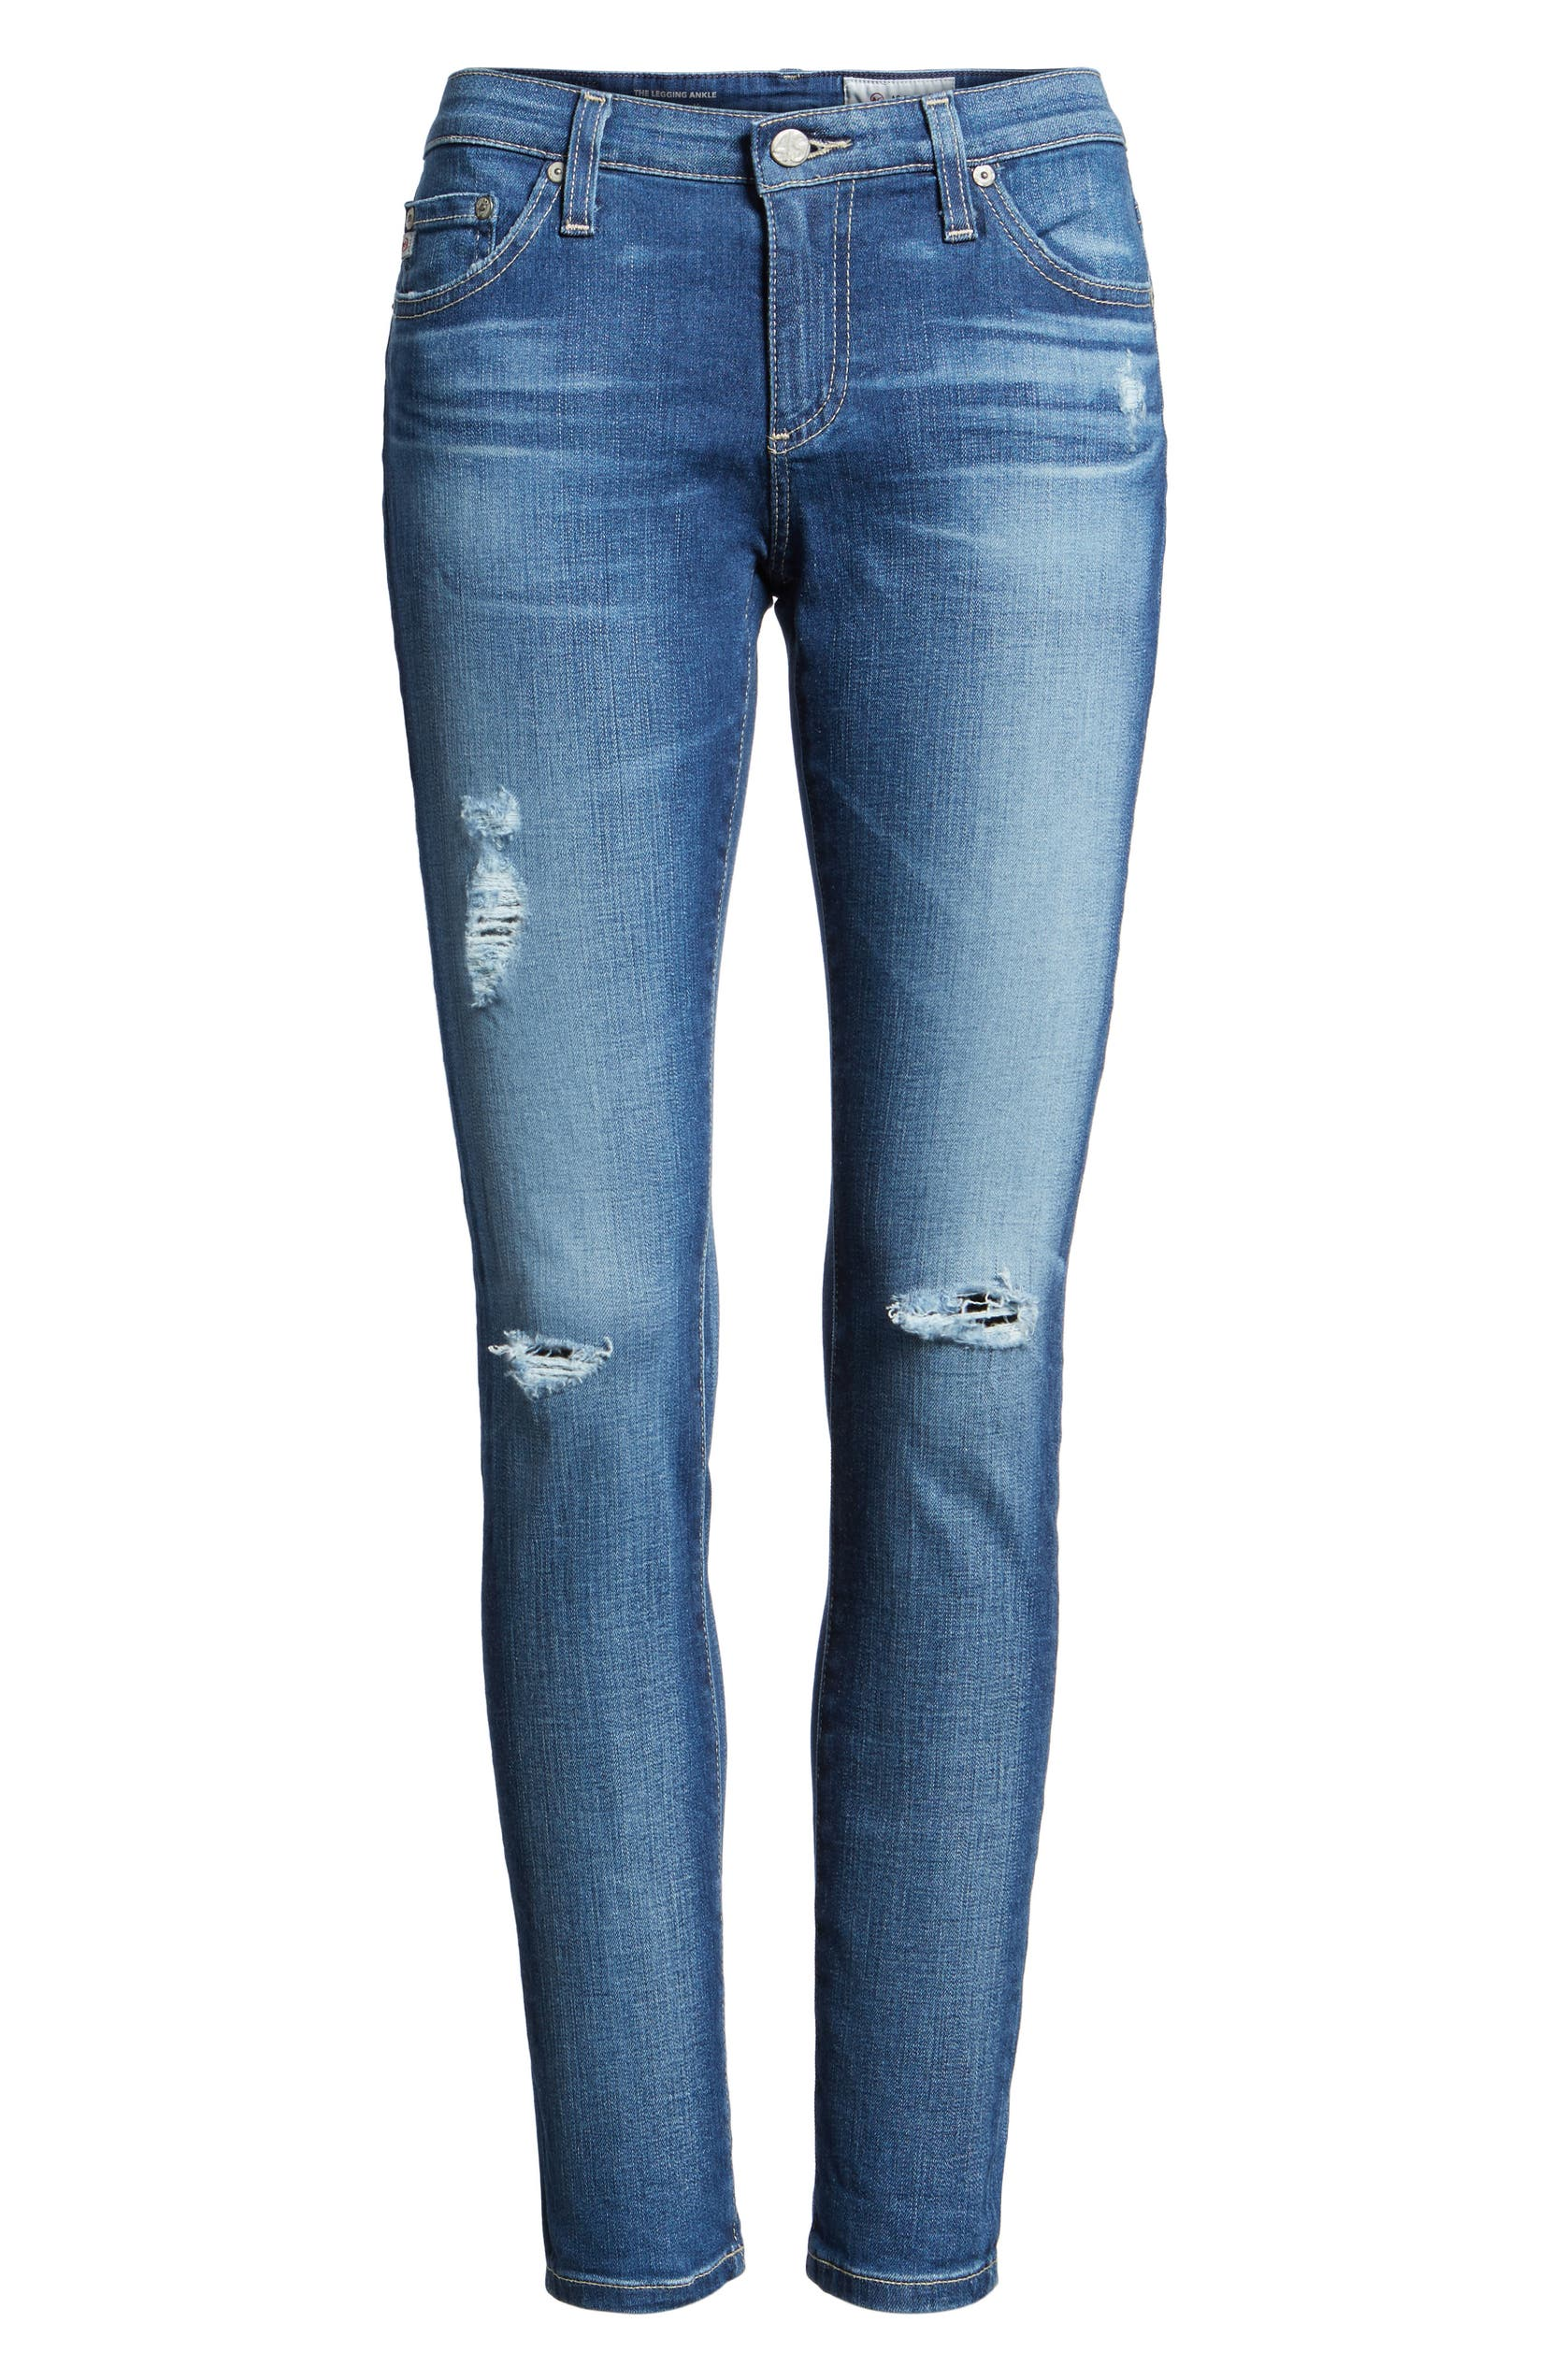 fa6255682b4bda AG The Legging Ankle Jeans (11 Year Swap Meet) | Nordstrom